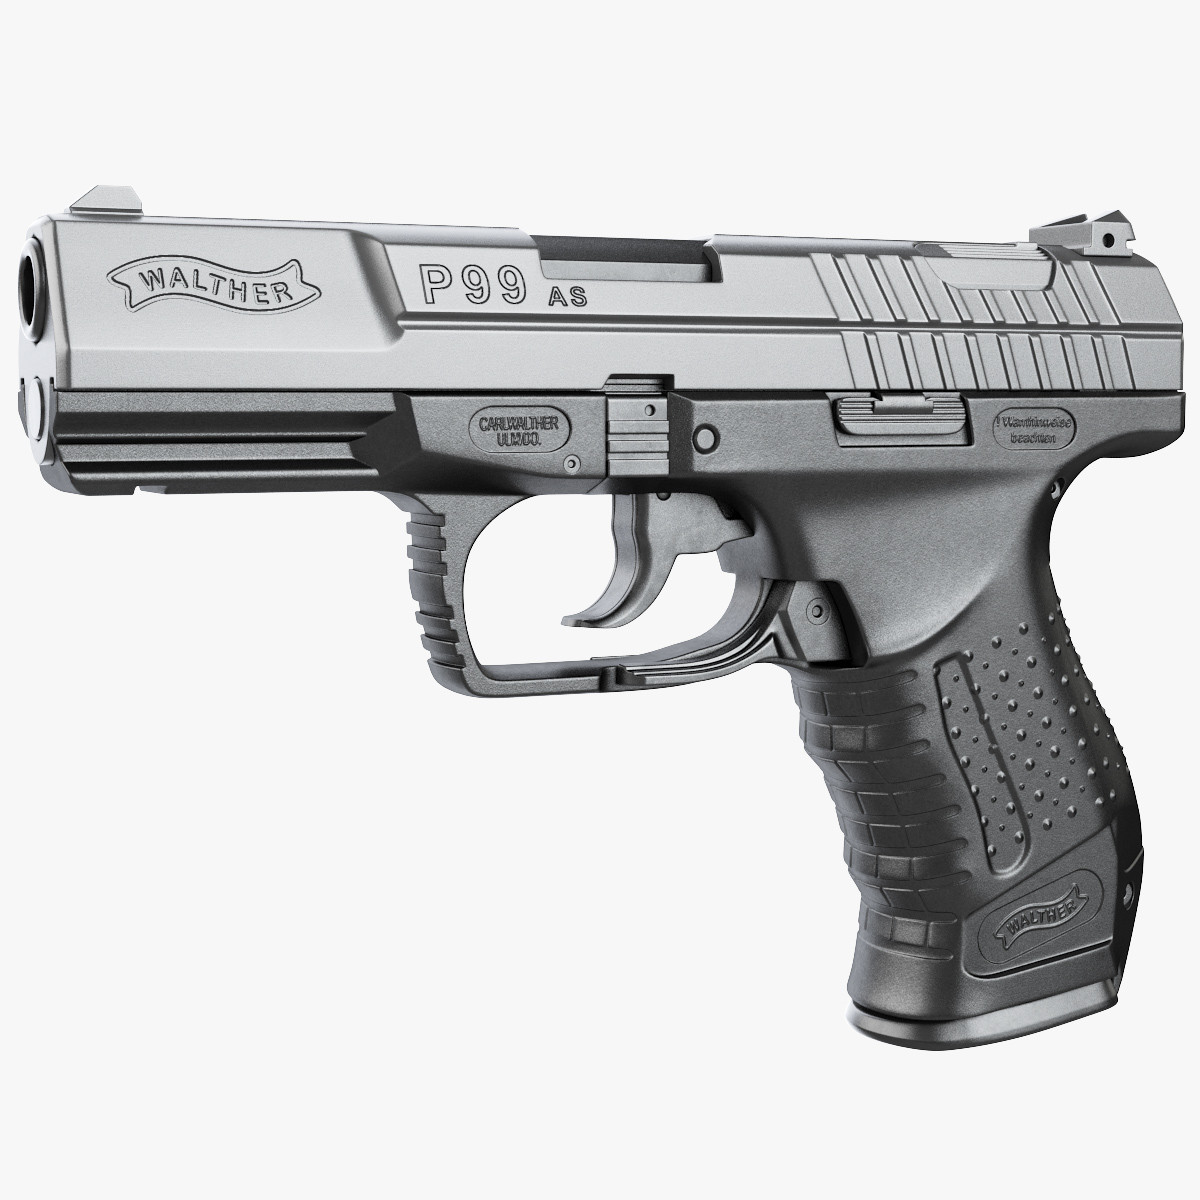 Walther_00072.jpg